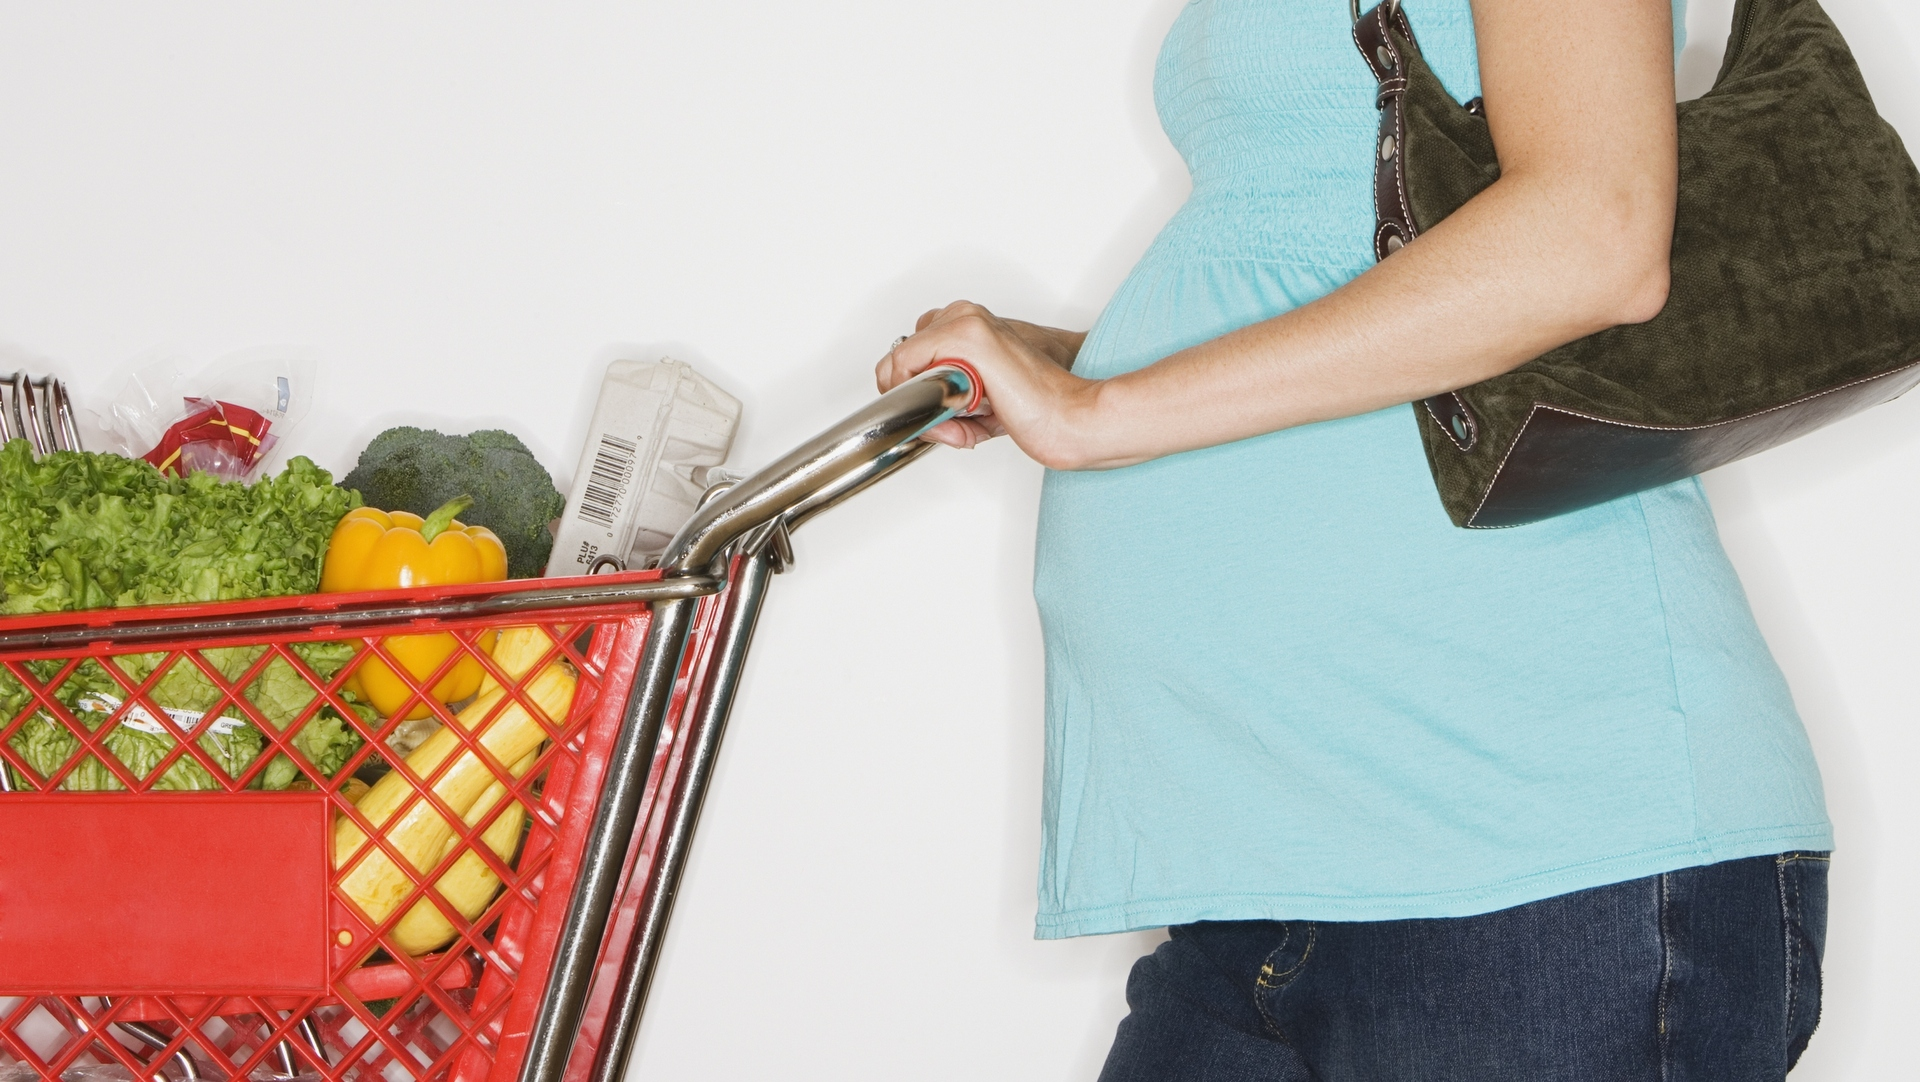 Pregnant woman with groceries